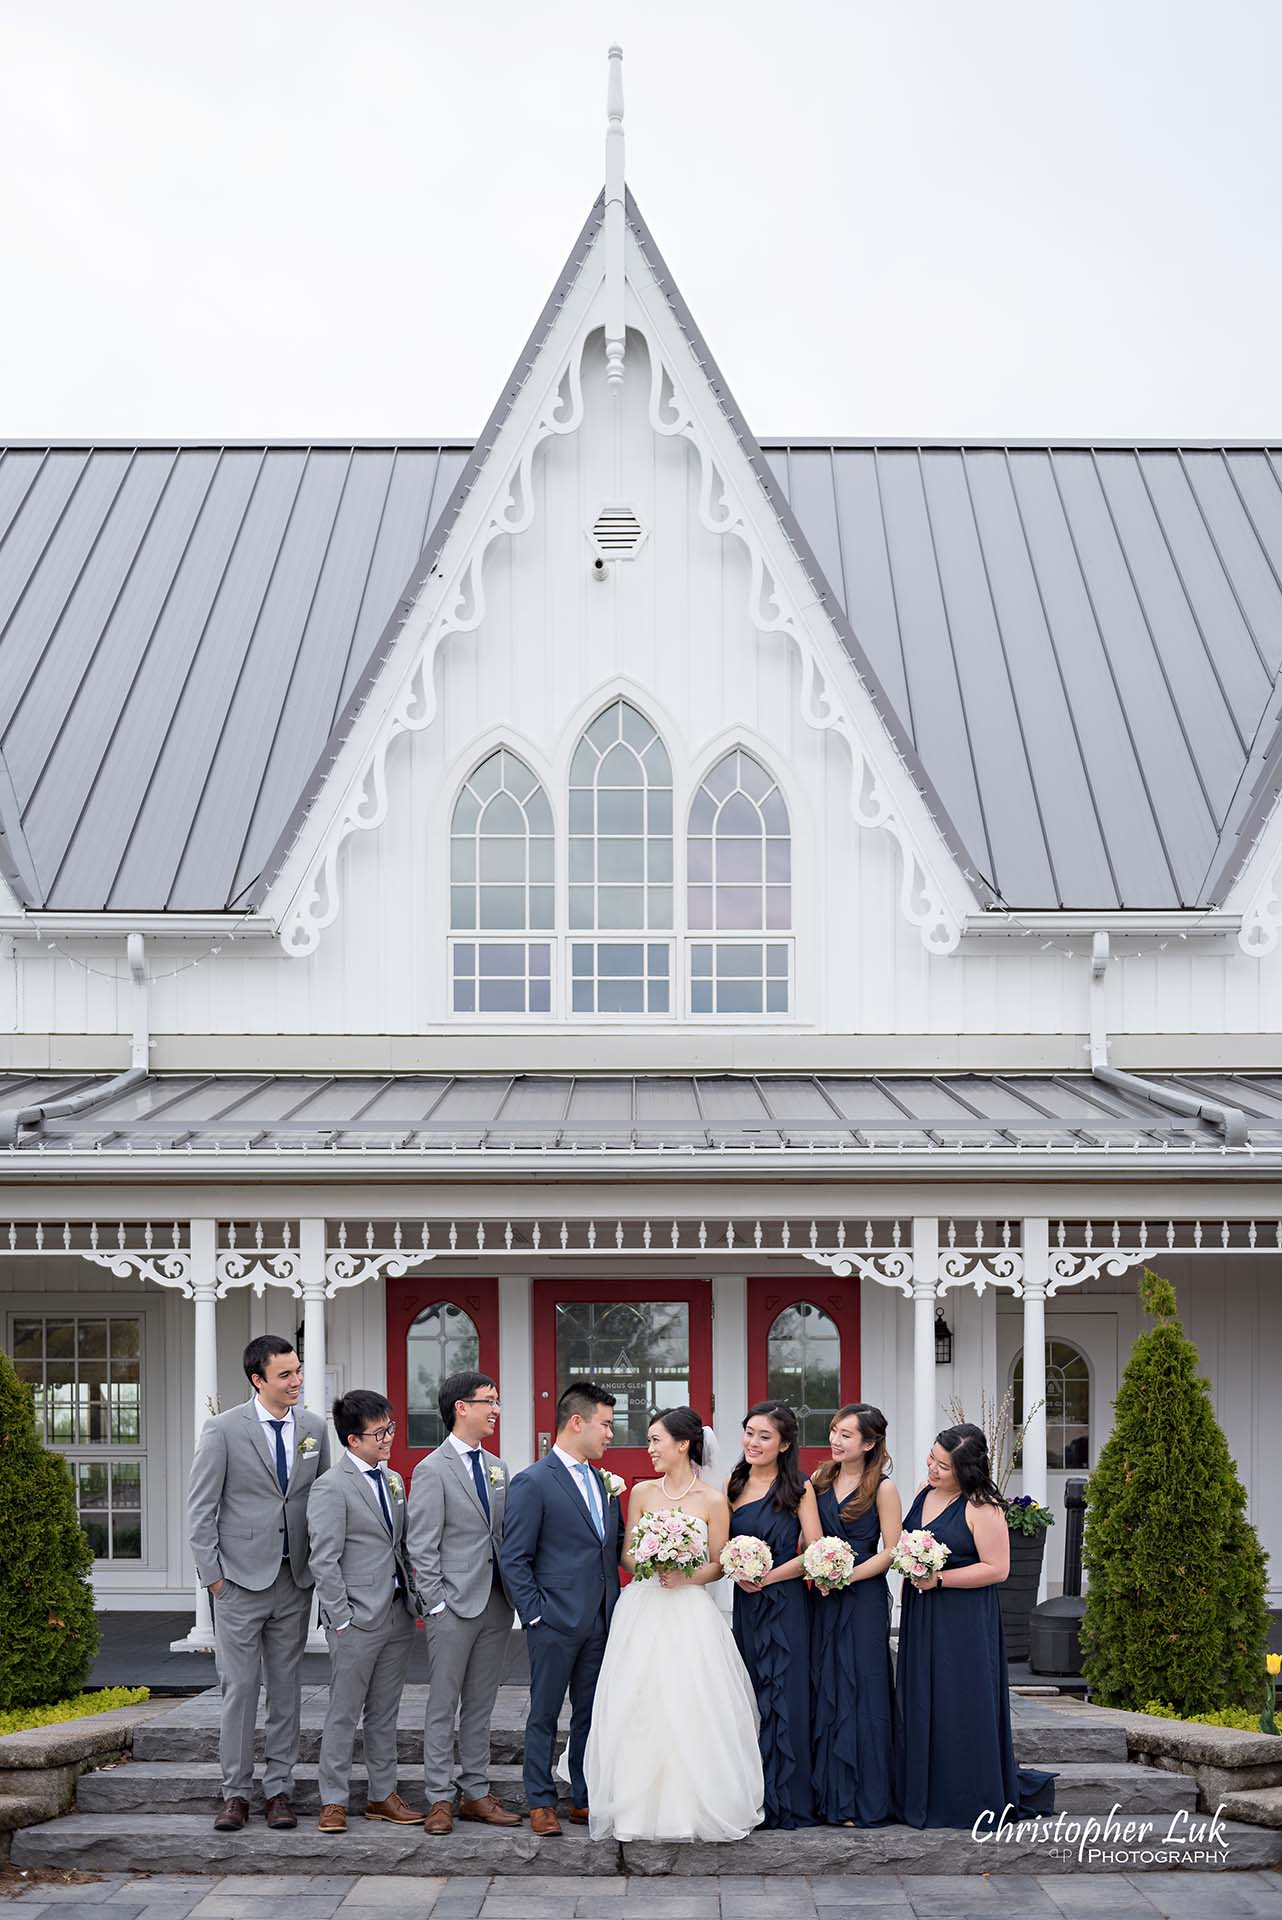 Christopher Luk Toronto Wedding Photographer Angus Glen Golf Club Markham Victoria Room Kennedy Loft Main Historic Estate Building Entrance Bridal Party Maid of Honour Best Man Groomsmen Bridesmaids Together Natural Candid Photojournalistic